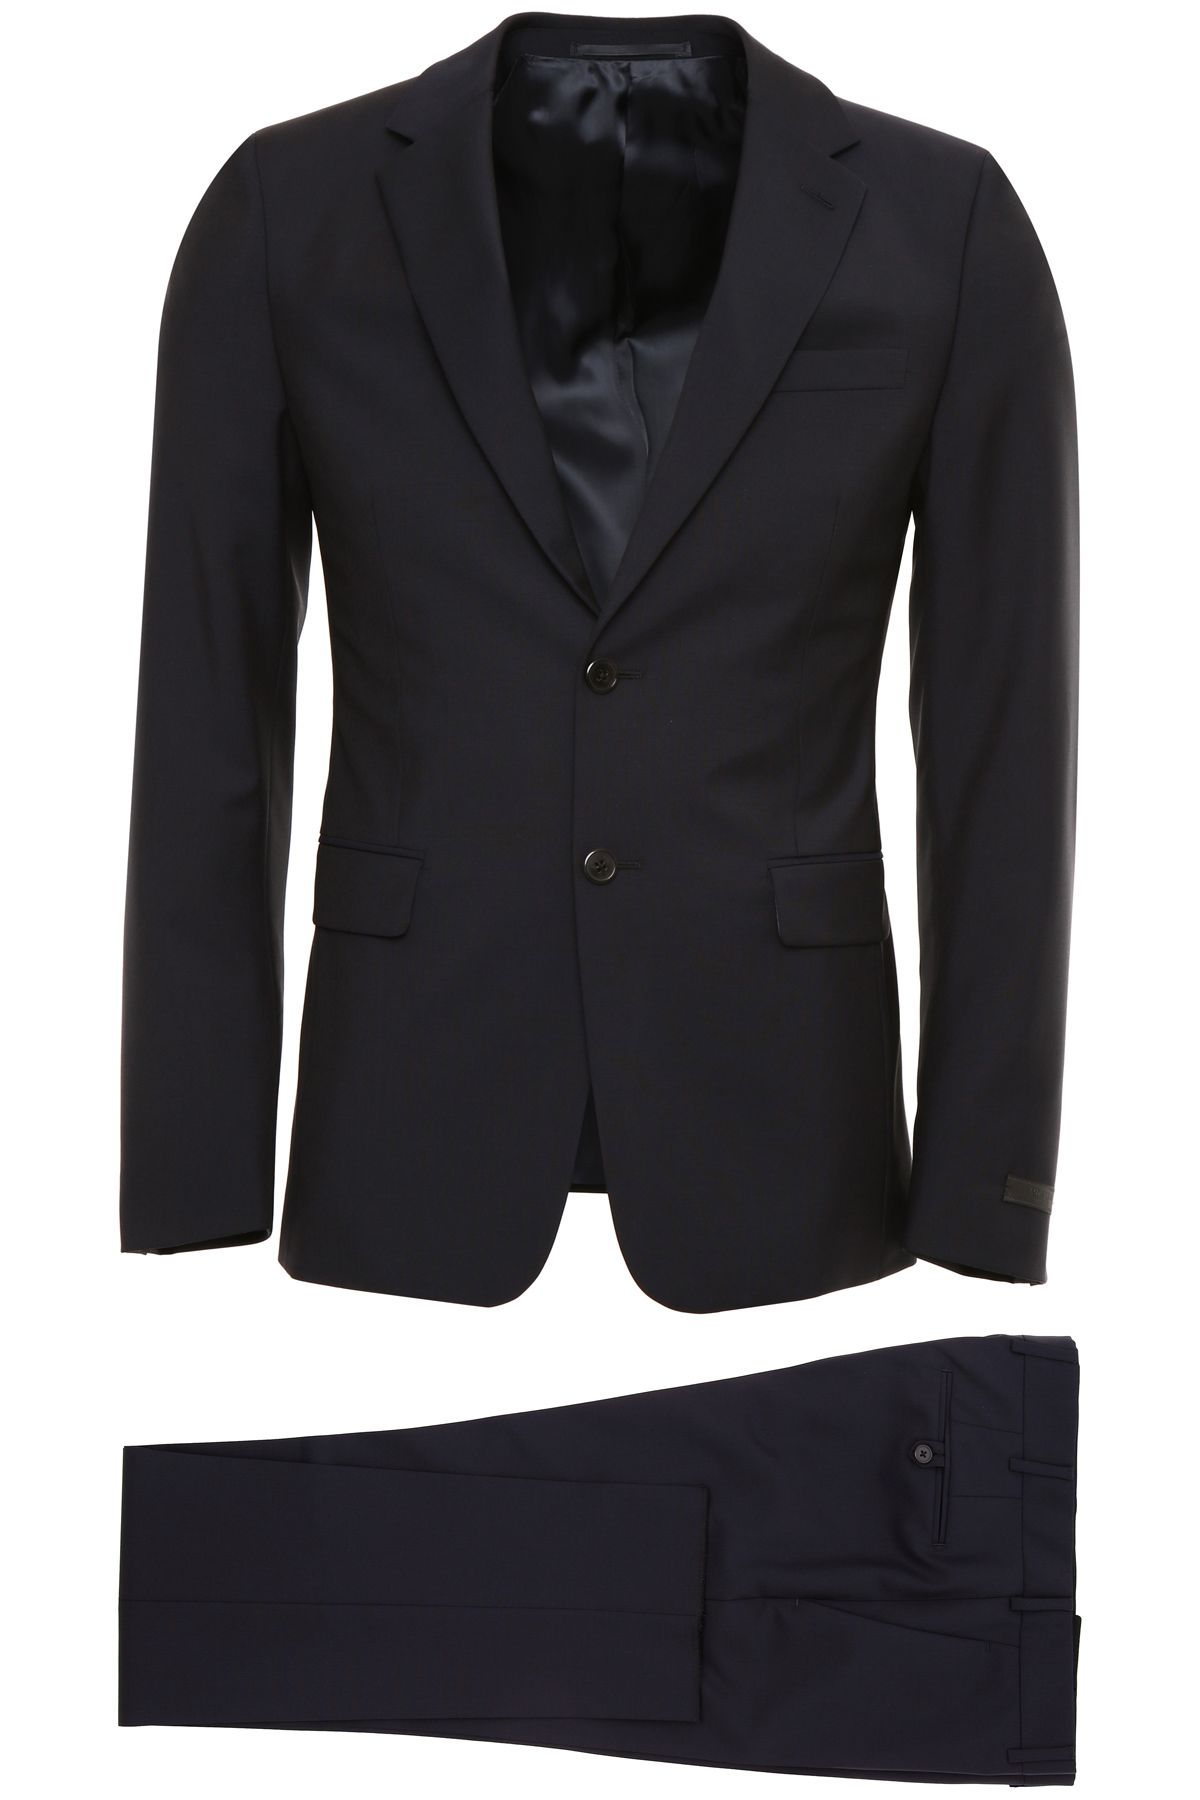 Prada Mohair Canvas Suit